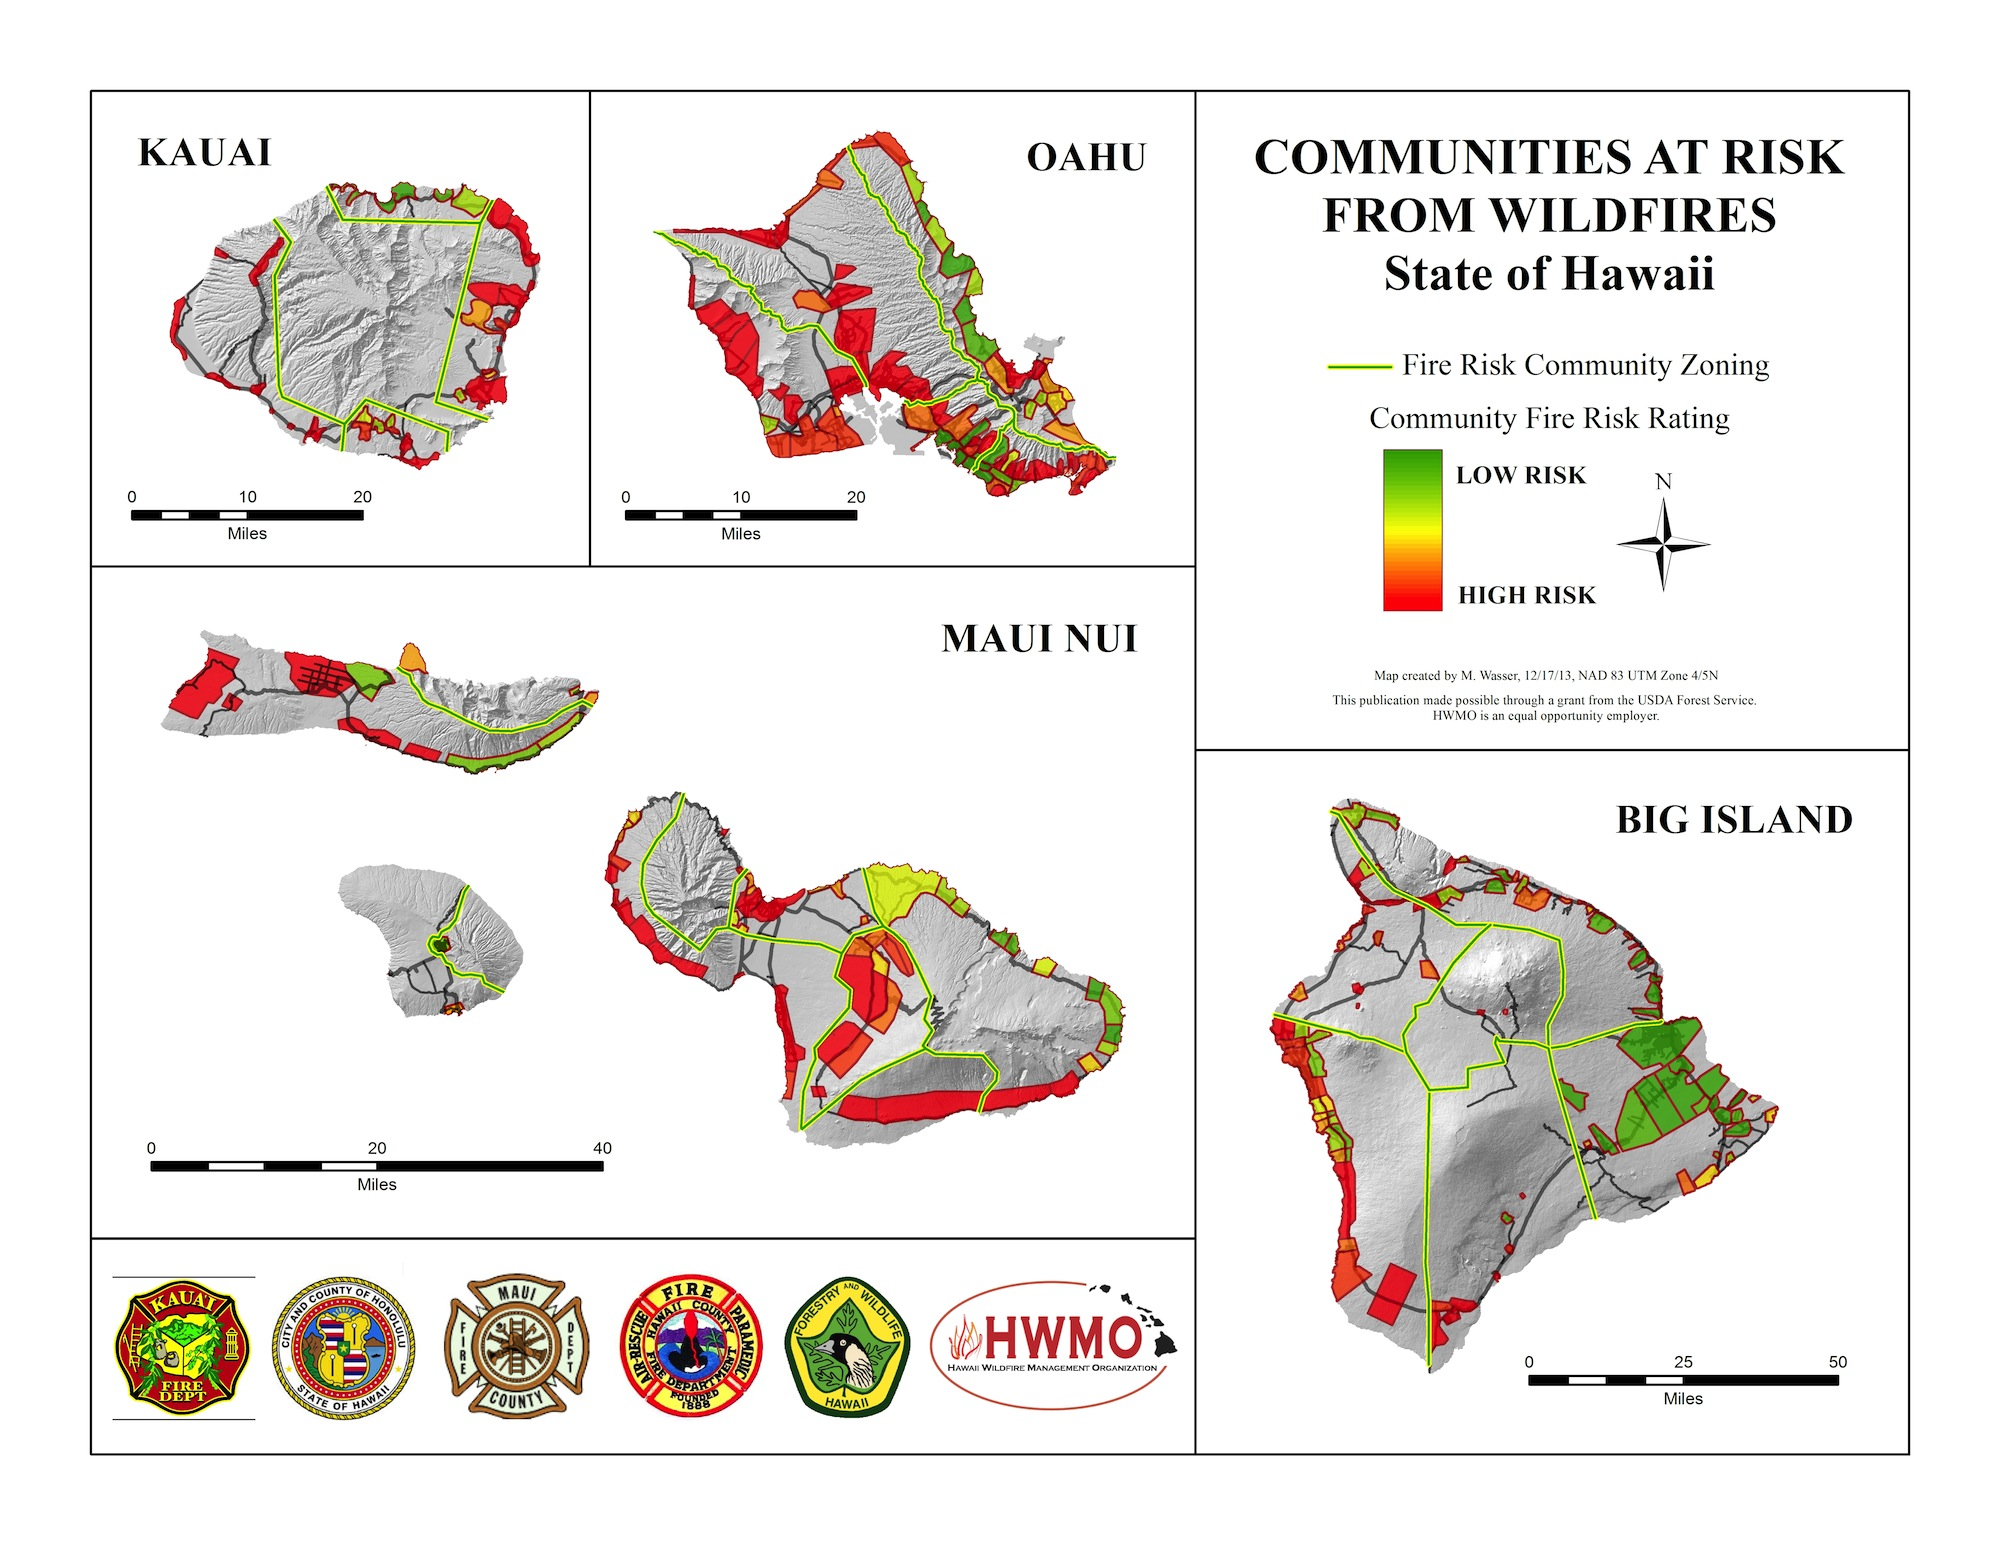 Above: Communities at Risk Assessment map for all the major Hawaiian Islands.